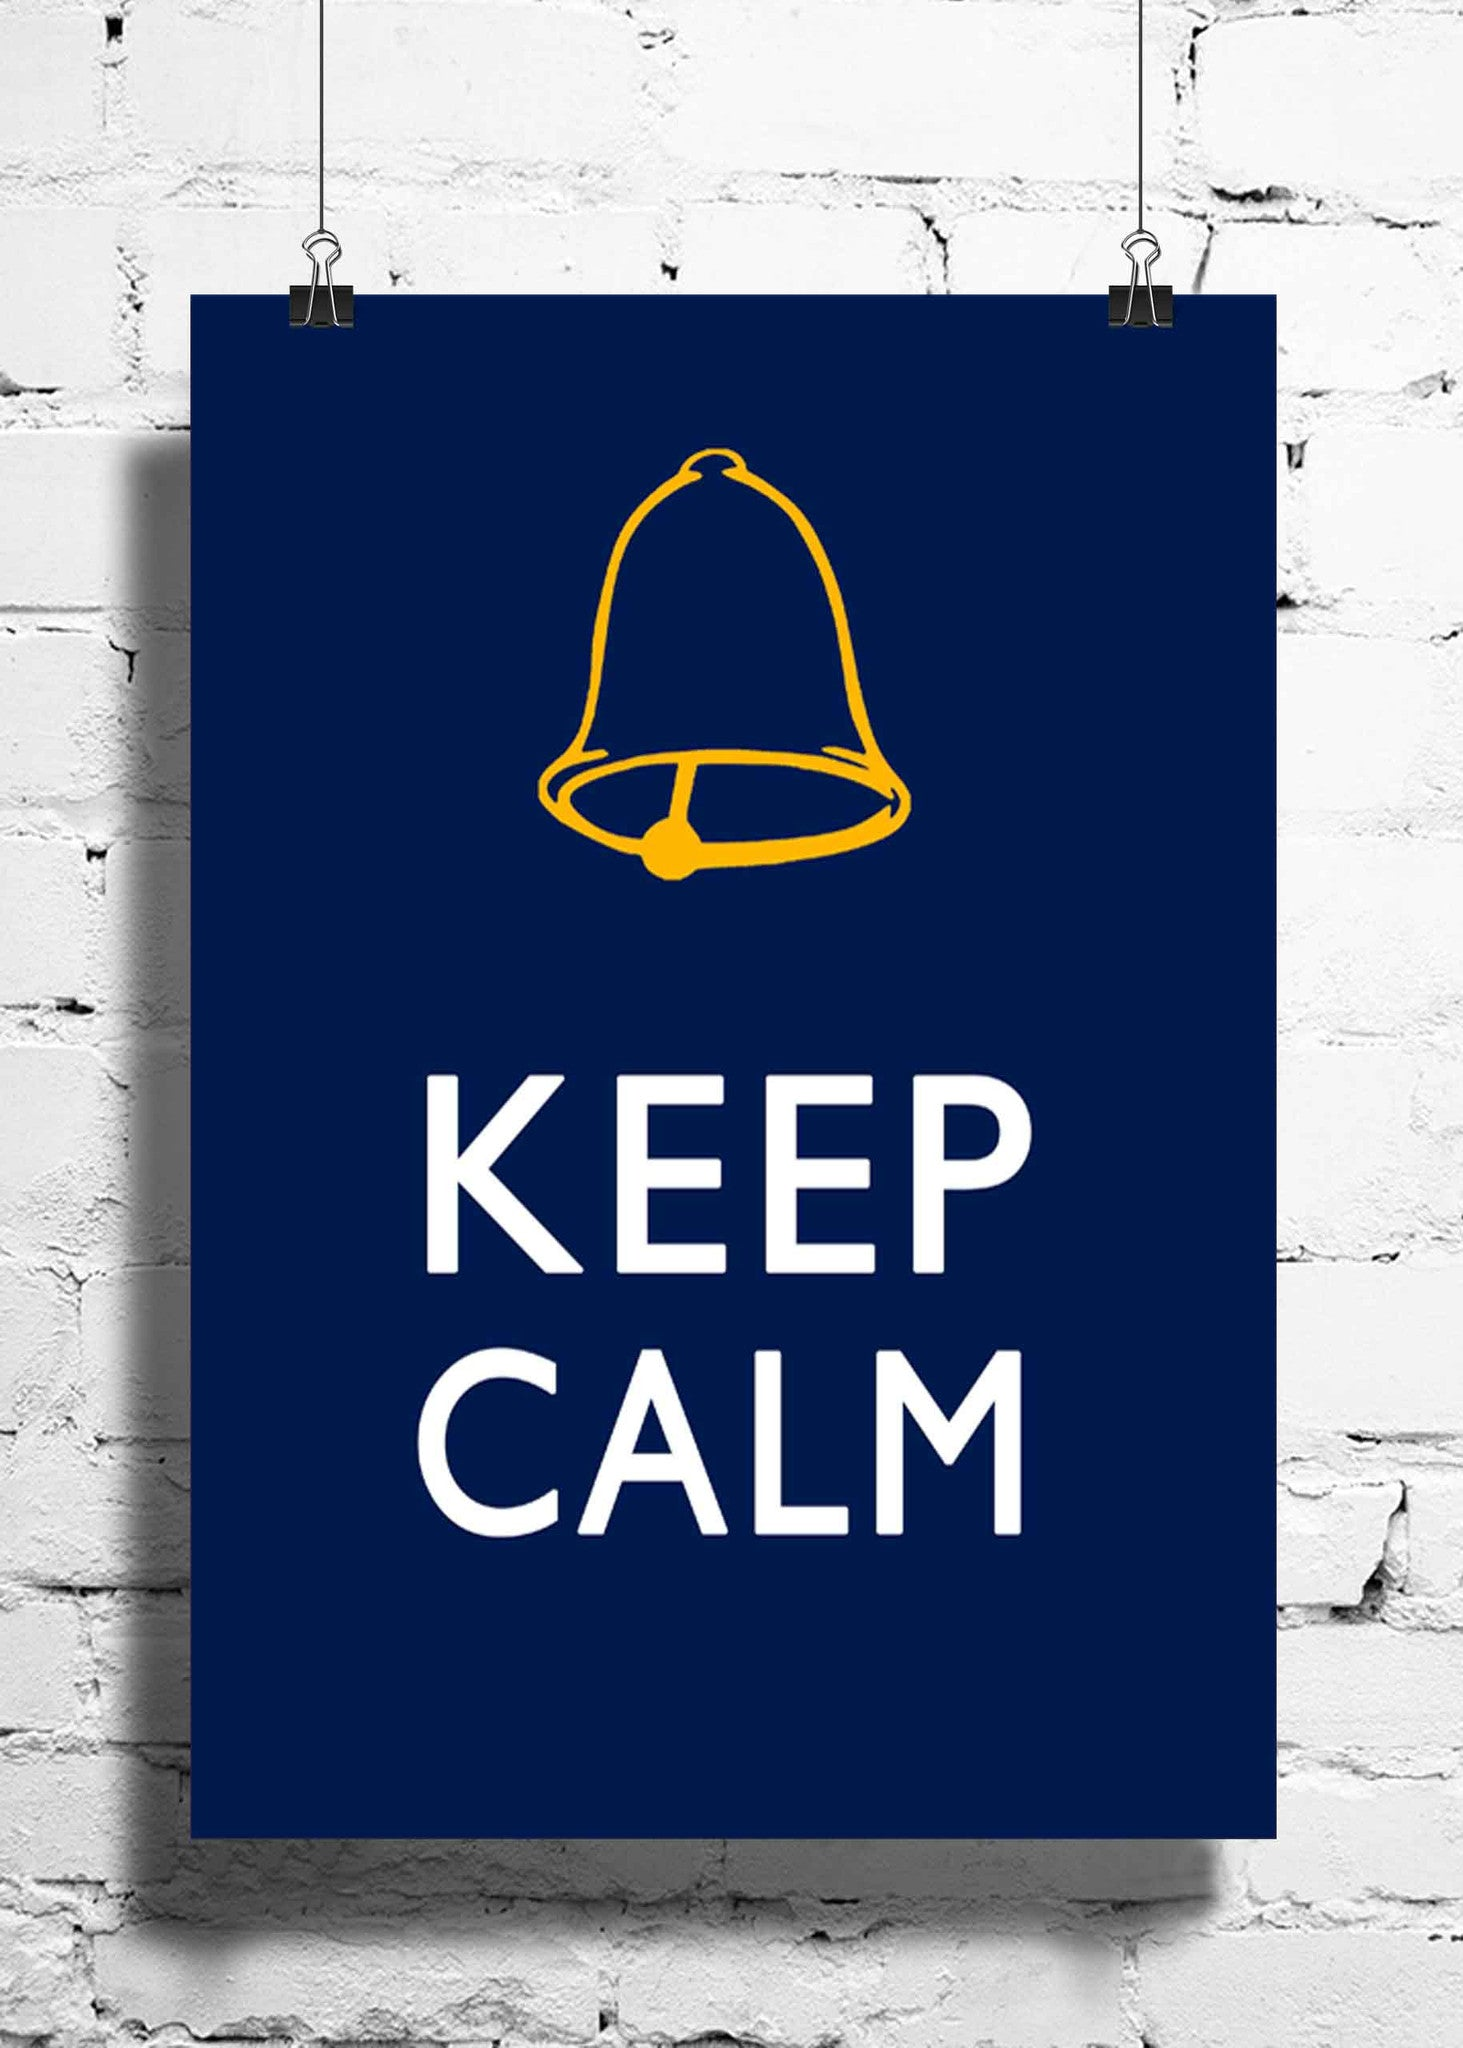 Cool Abstract Funny Ghanta Keep Calm wall posters, art prints, stickers decals - stuffpanda - 1